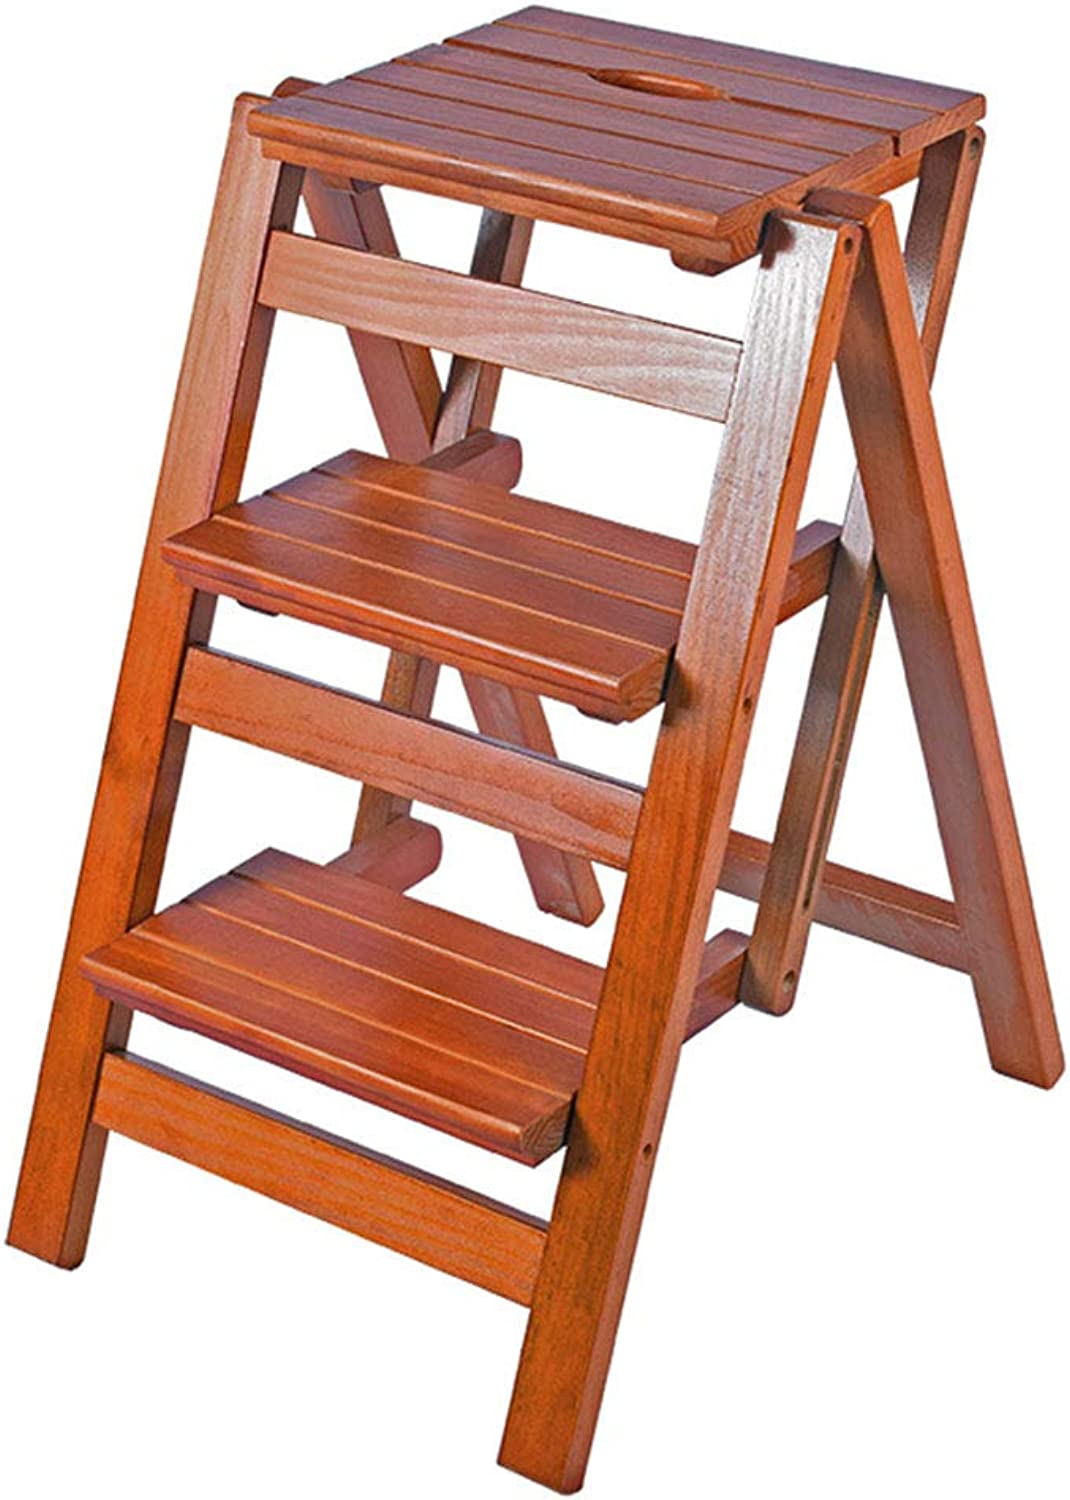 Folding 3 Pedal Stool Ladder Chair Solid Wood Portable Home Safety Stair Stool Wooden Shelf Max Load 150KG (color Light Walnut)